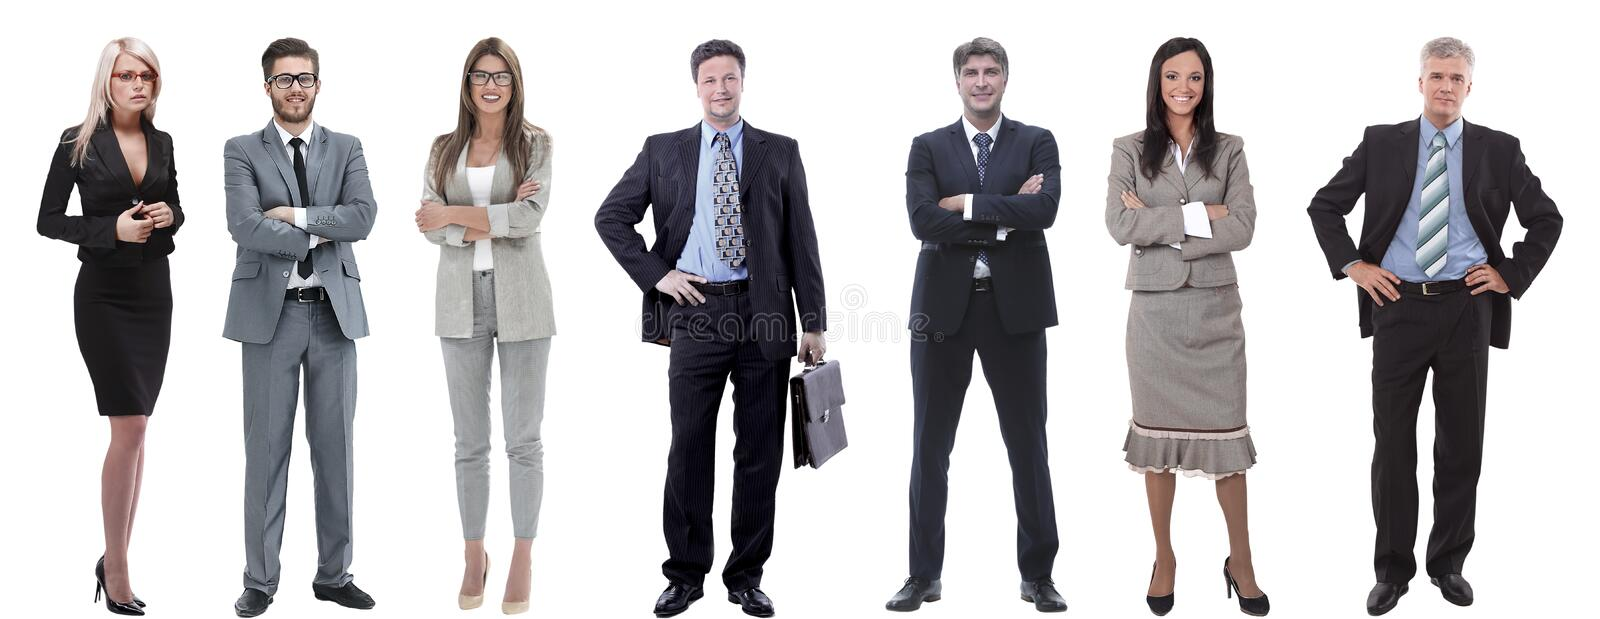 Group of successful business people standing in a row. stock image